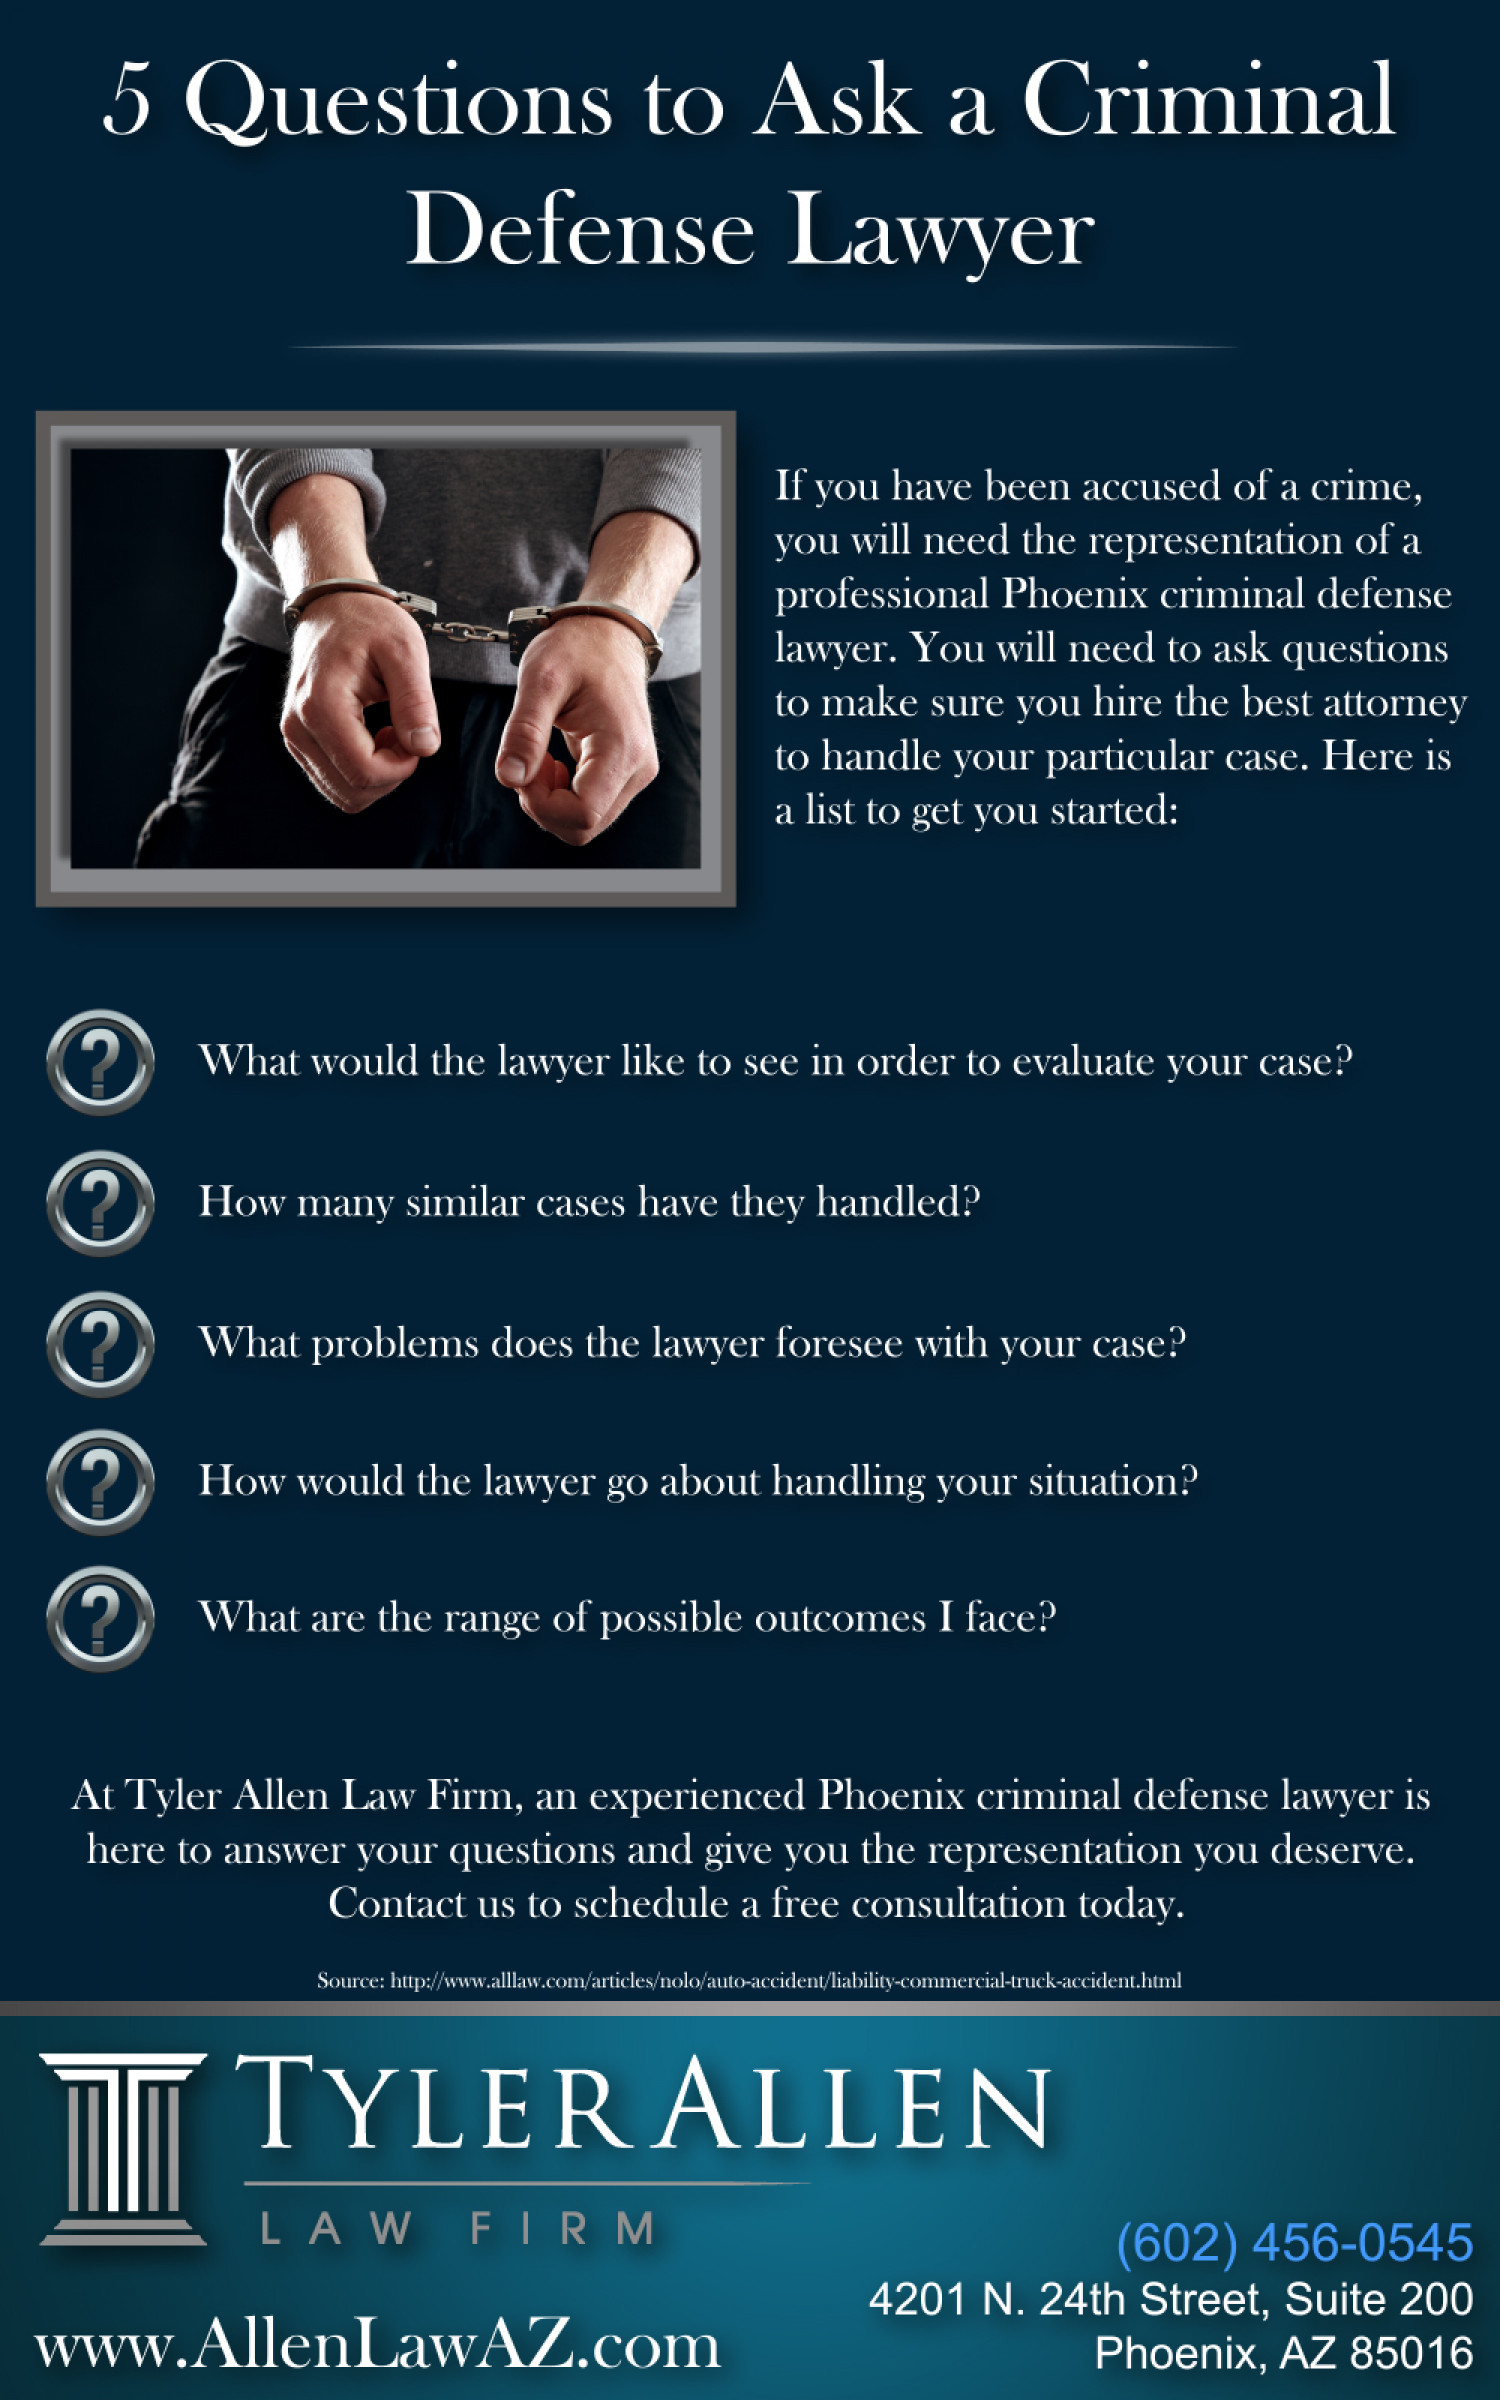 5-questions-to-ask-a-criminal-defense-at